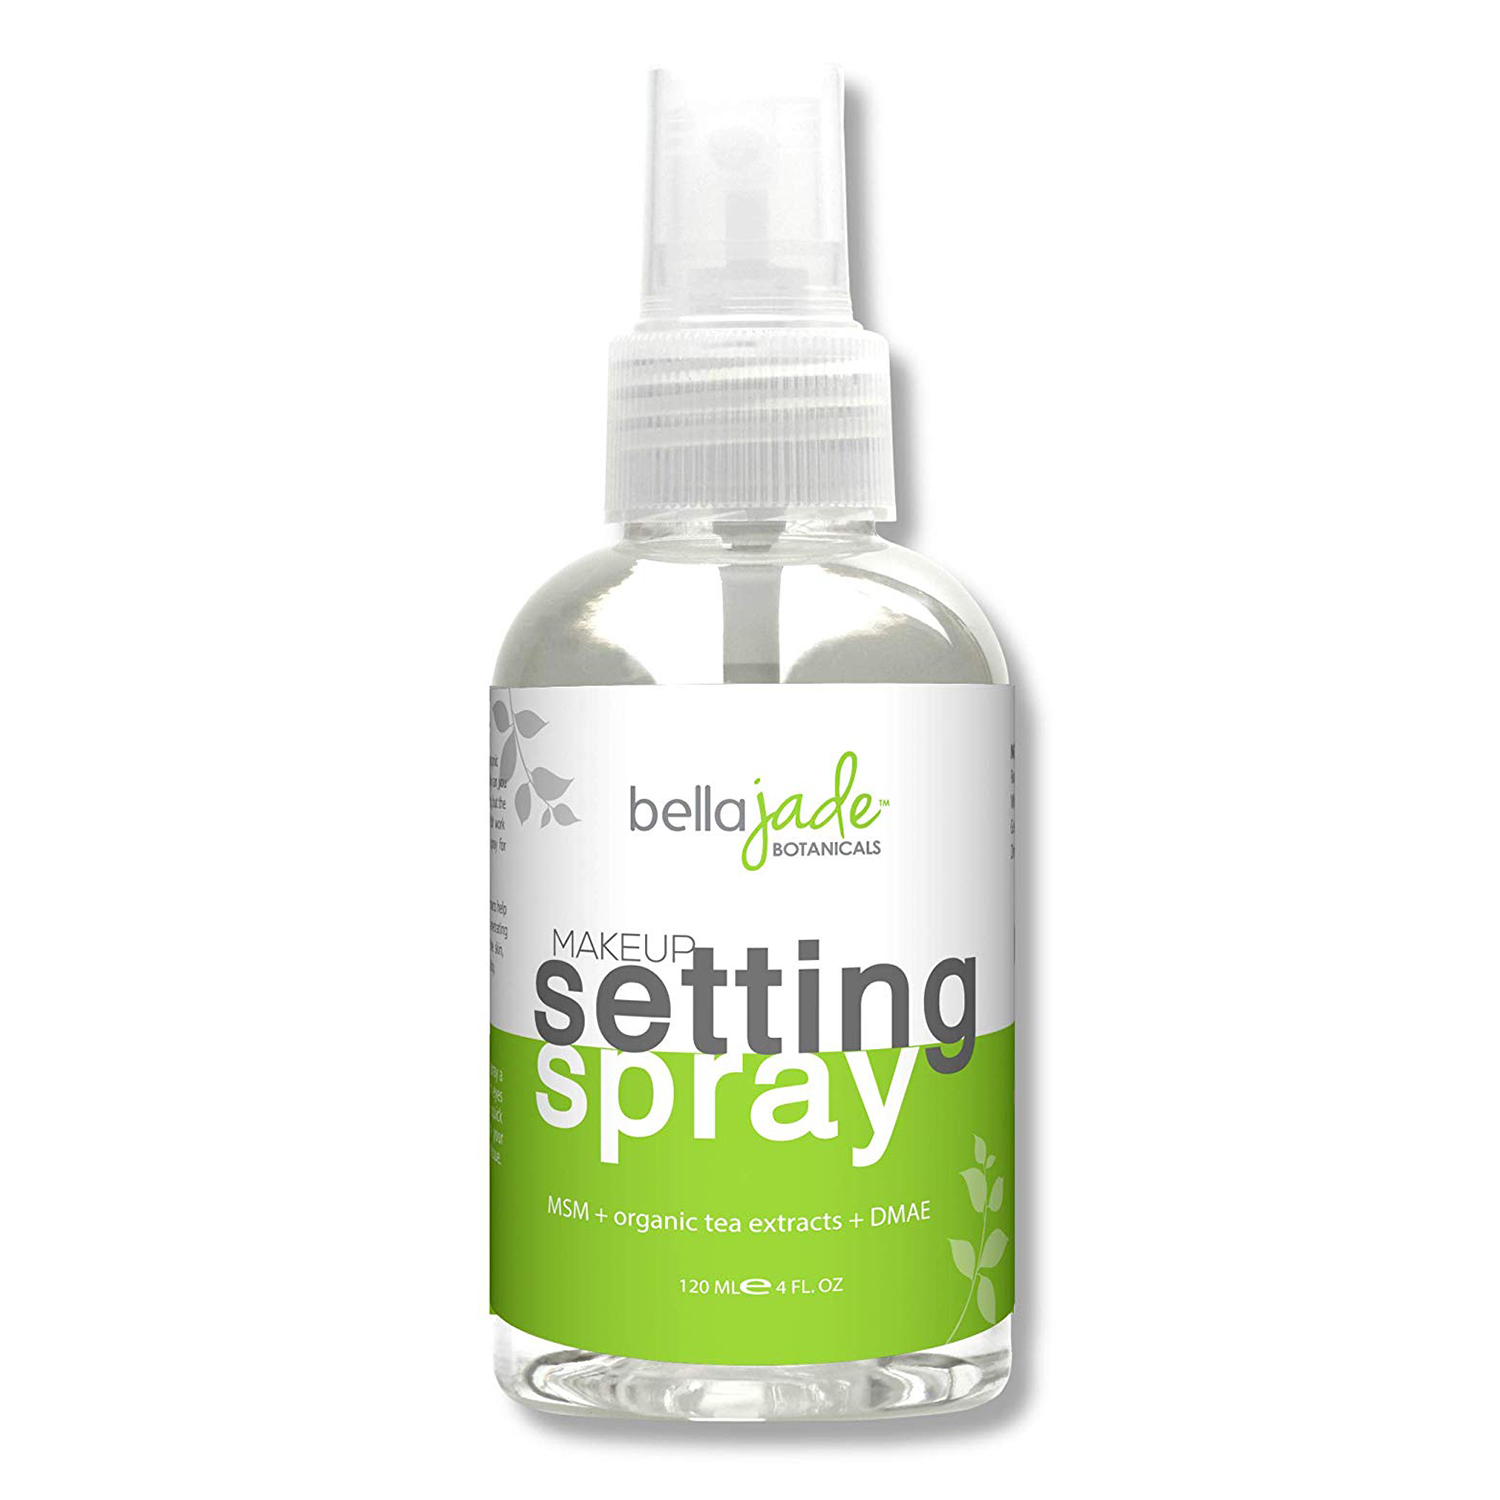 Best Anti-Aging Products on Amazon: Bella Jade Makeup Setting Spray with Organic Green Tea, MSM, and DMAE